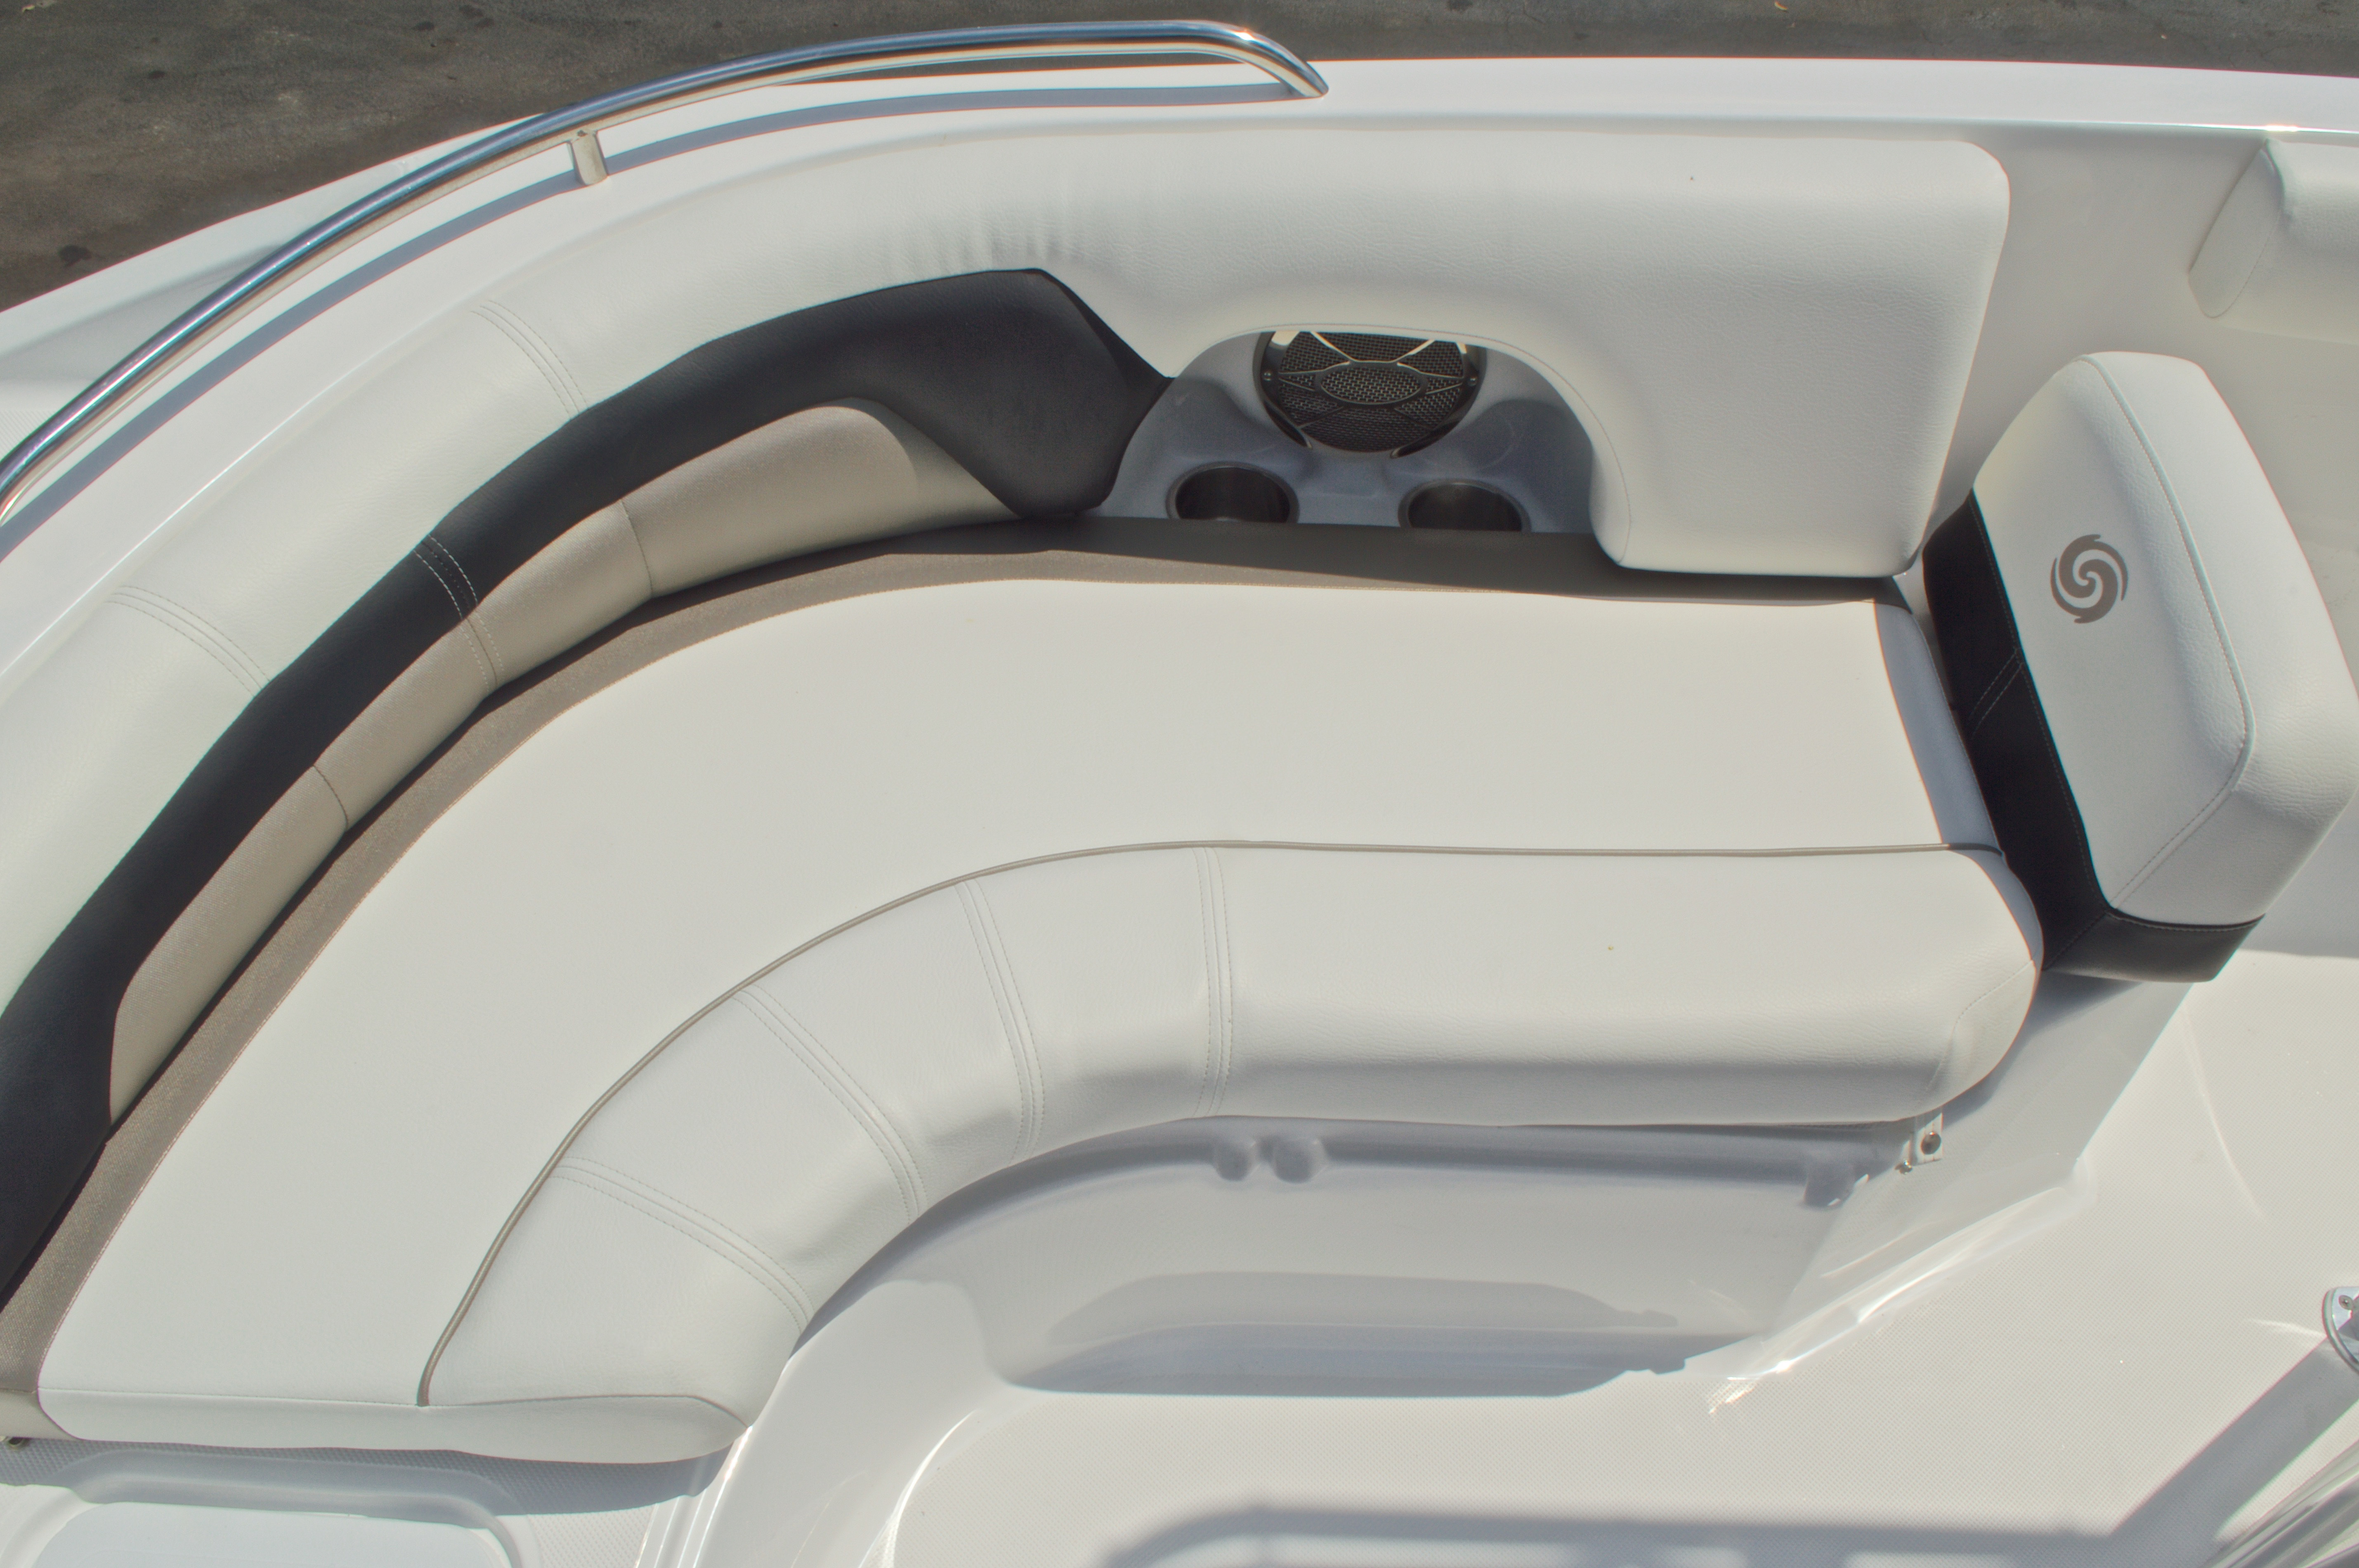 Thumbnail 48 for New 2016 Hurricane CC19 Center Console boat for sale in West Palm Beach, FL